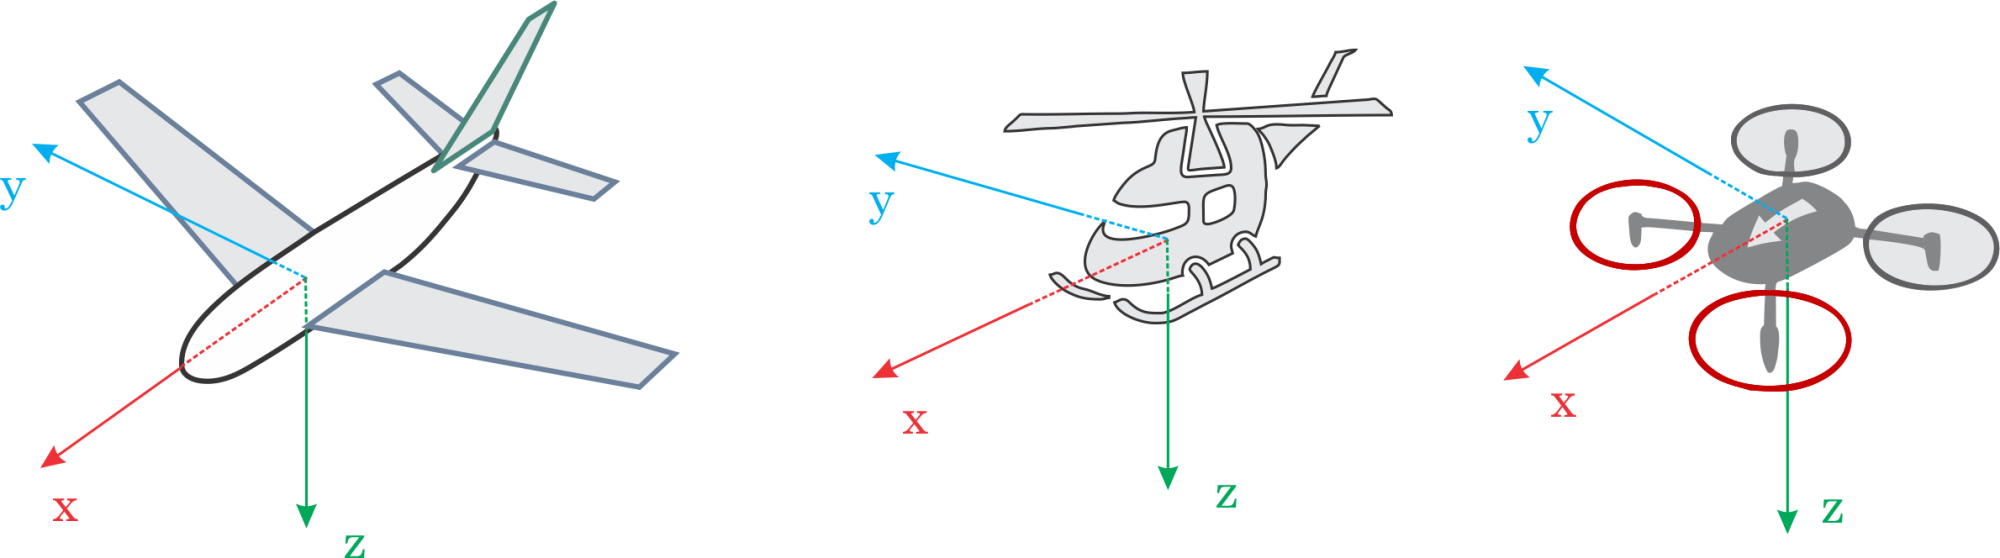 hight resolution of it is important to know the vehicle heading direction in order to align the autopilot with the vehicle vector of movement multicopters have a heading even